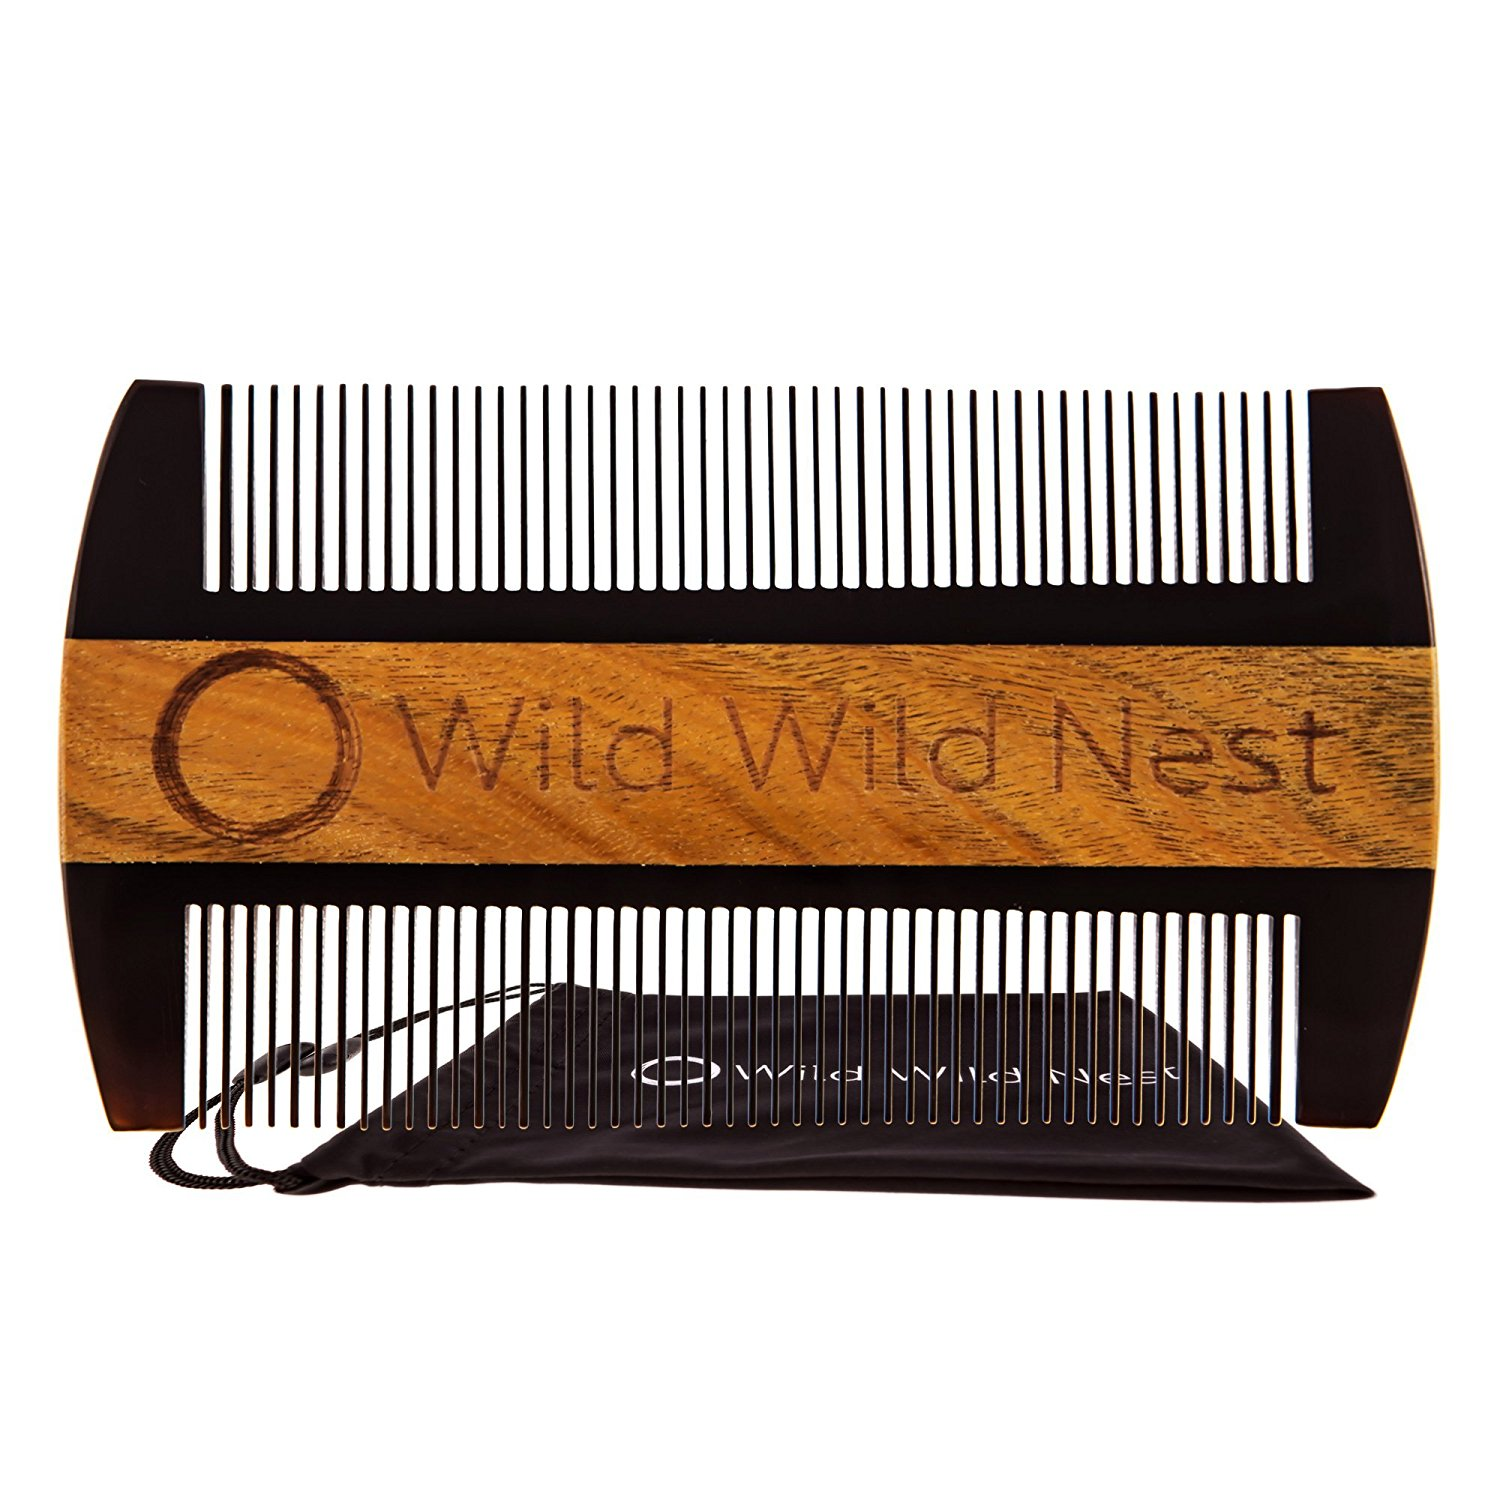 Wild Wild Nest Beard Comb, Pocket Size